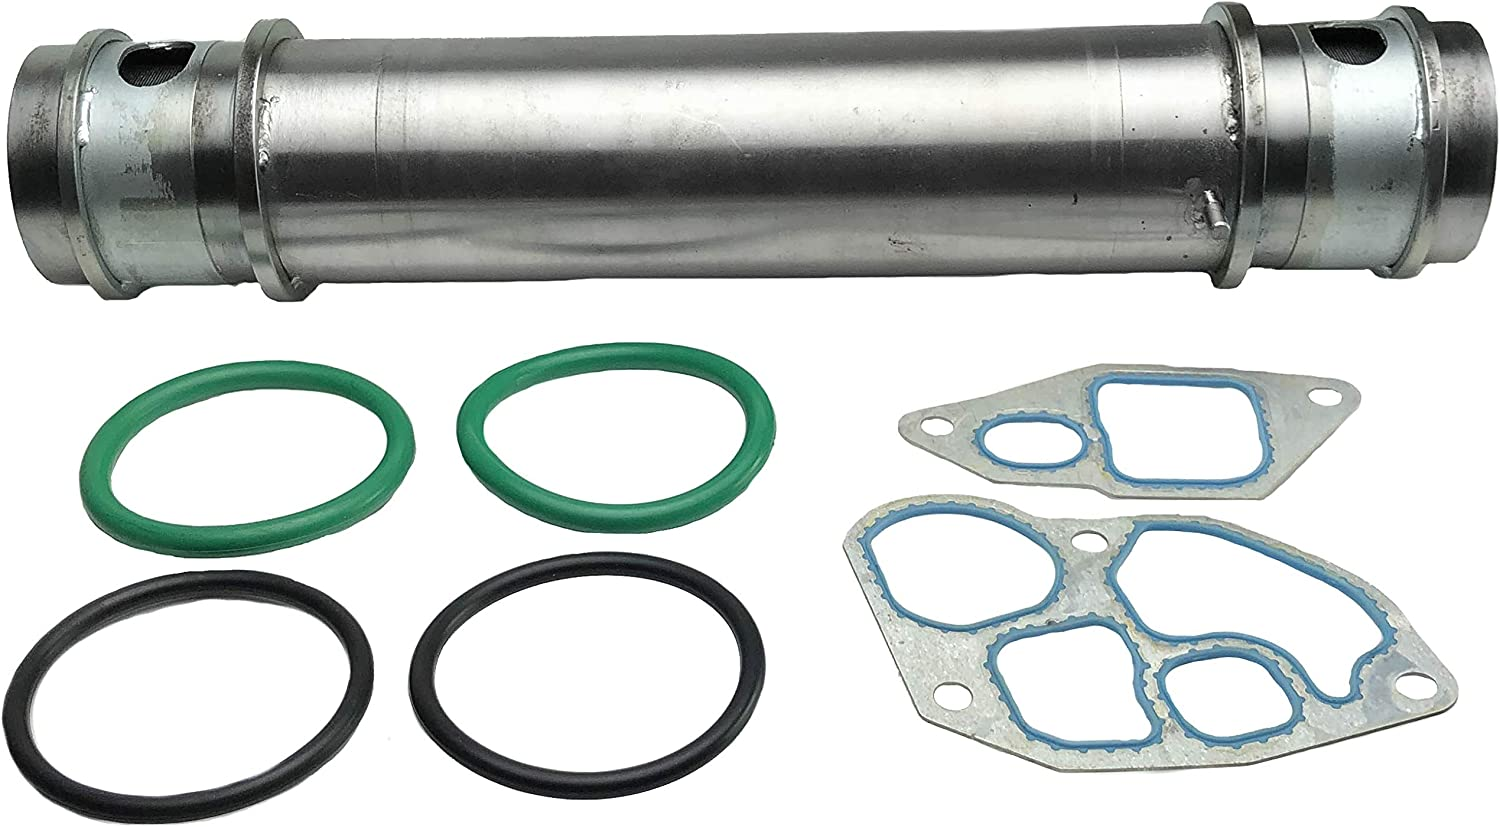 7.3L Super Duty Powerstroke Ford F250 F350 F450 F550 F-650 F-750 E350 E450 E550 Econoline Excursion 1C3Z-6A642-AA Diesel Oil Cooler Kit With Gaskets Compatible with 1994-2003